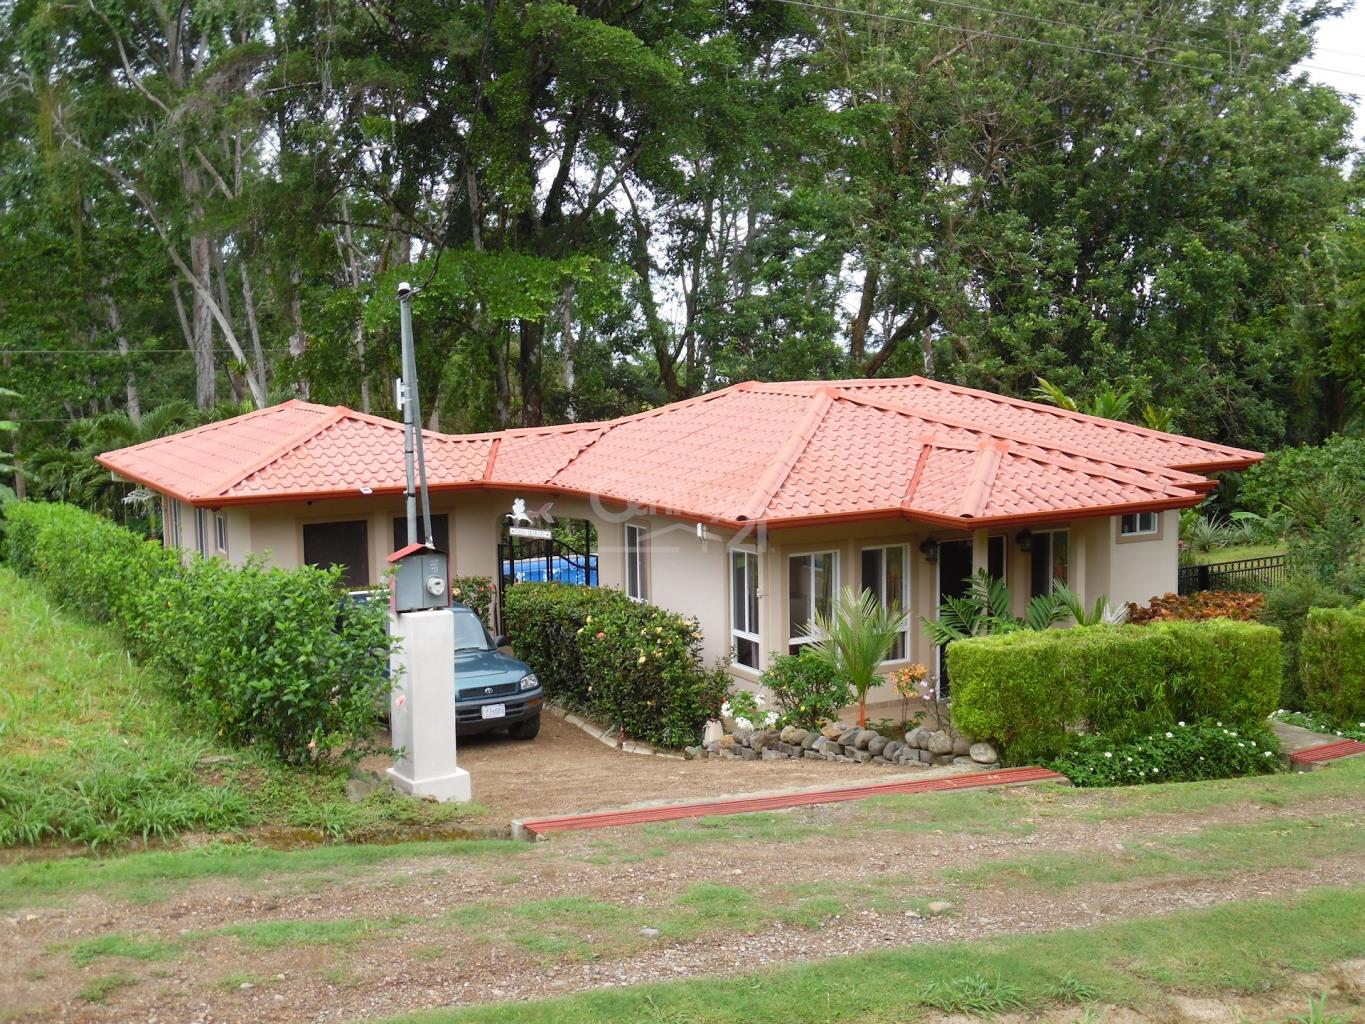 0.3 ACRES - 2 Bedroom Home With Pool In Gated Community!!